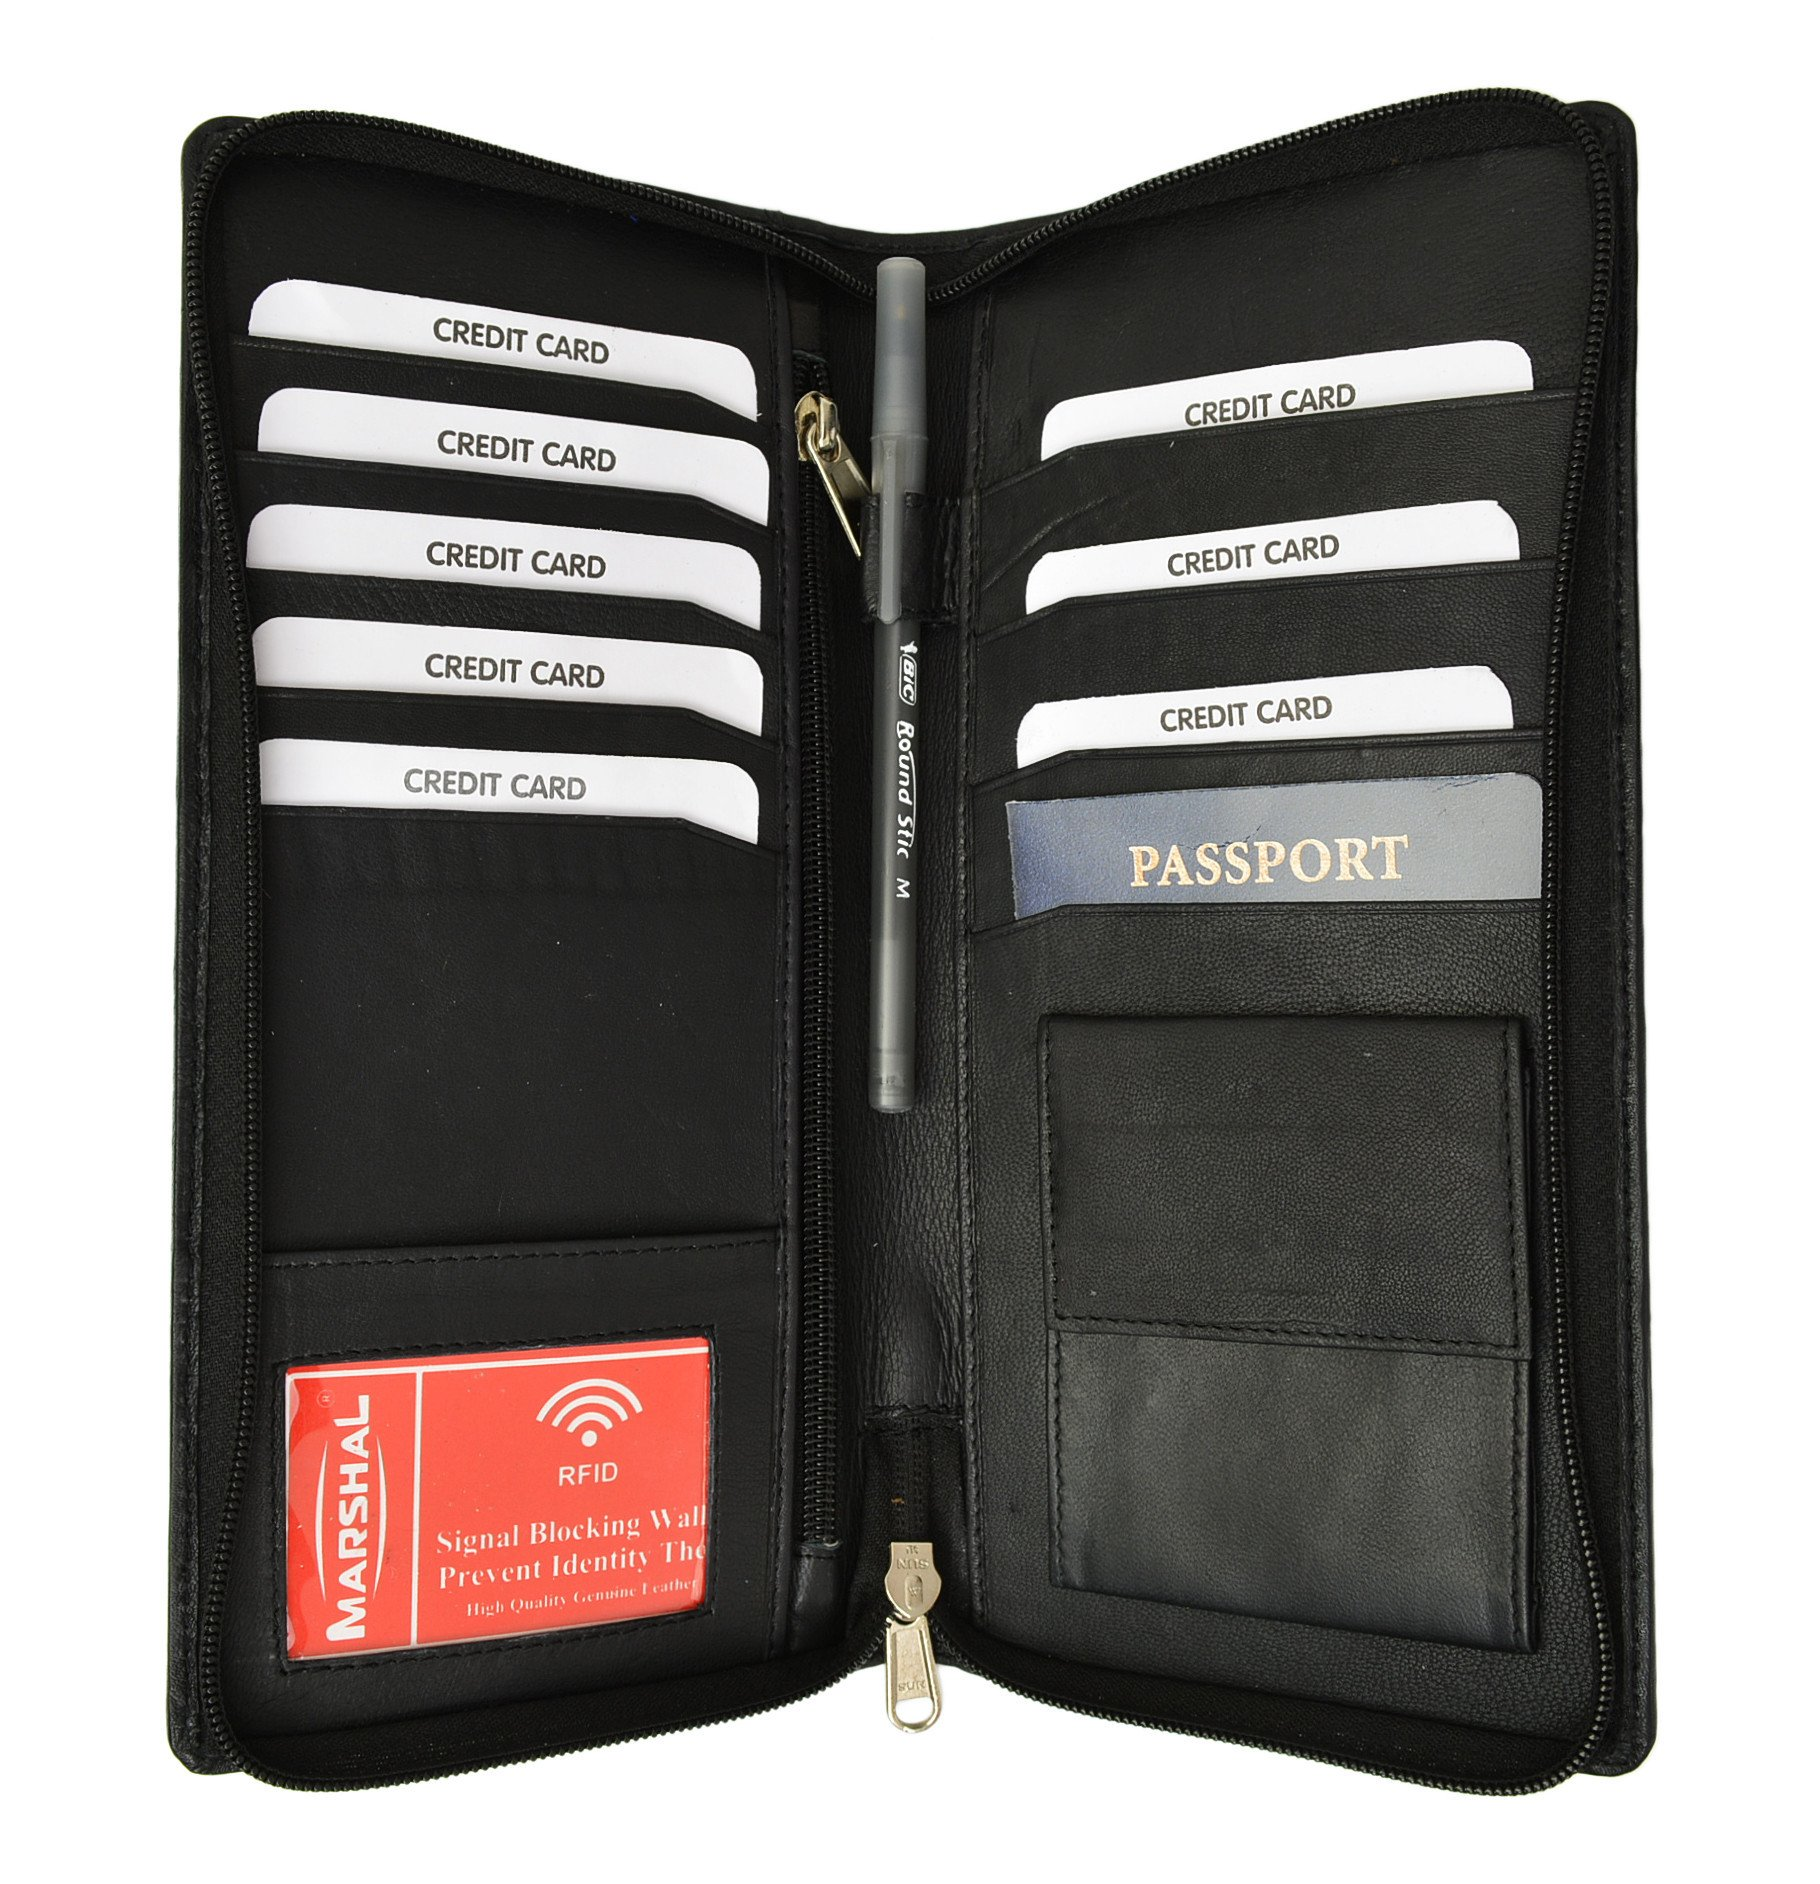 Marshalwallet RFID Premium Leather Zipper Travel Credit Card Passport Wallet RFID P 663 Black